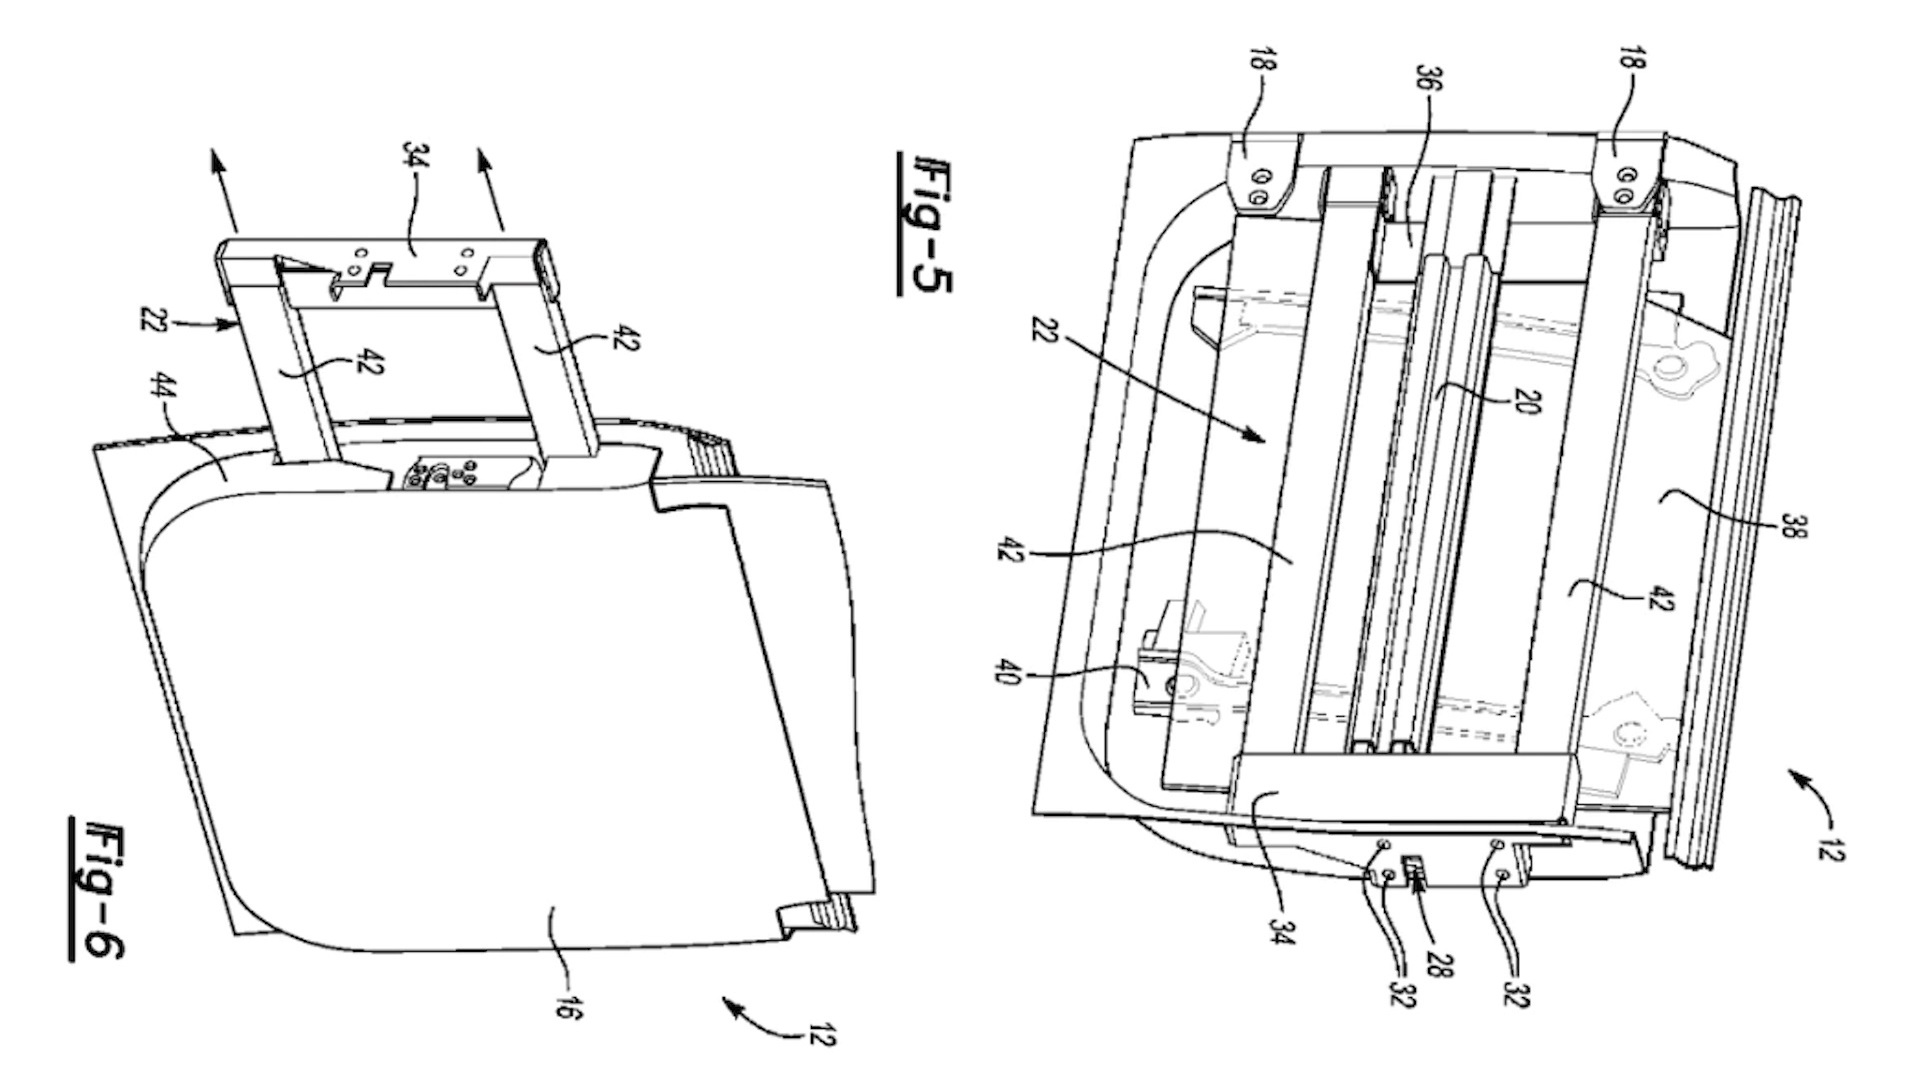 Potential Ford Bronco removable door patent